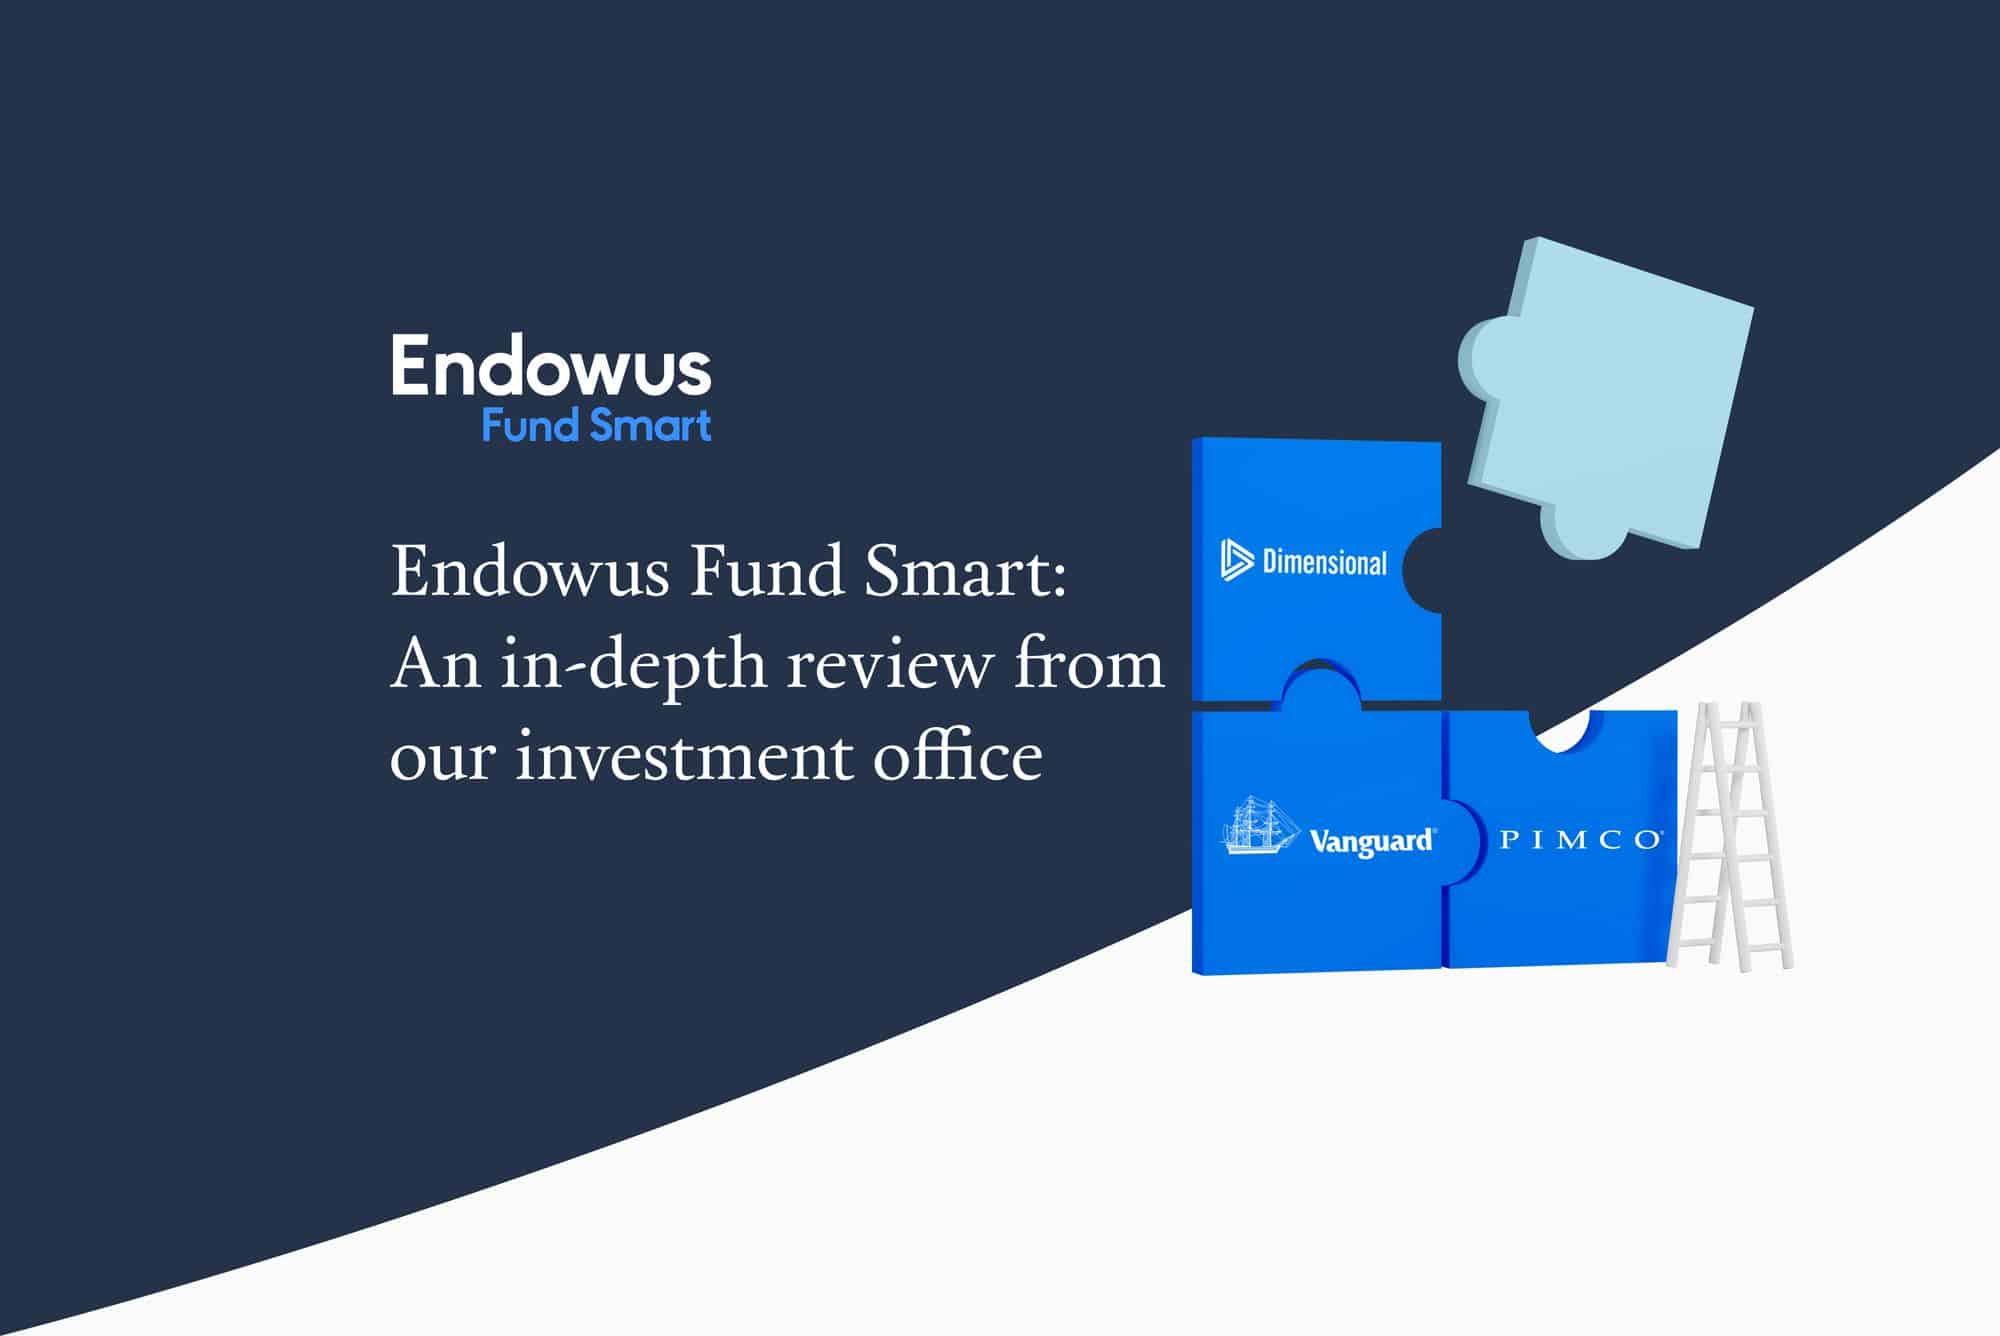 Endowus Fund Smart: An in-depth review from our Investment Office